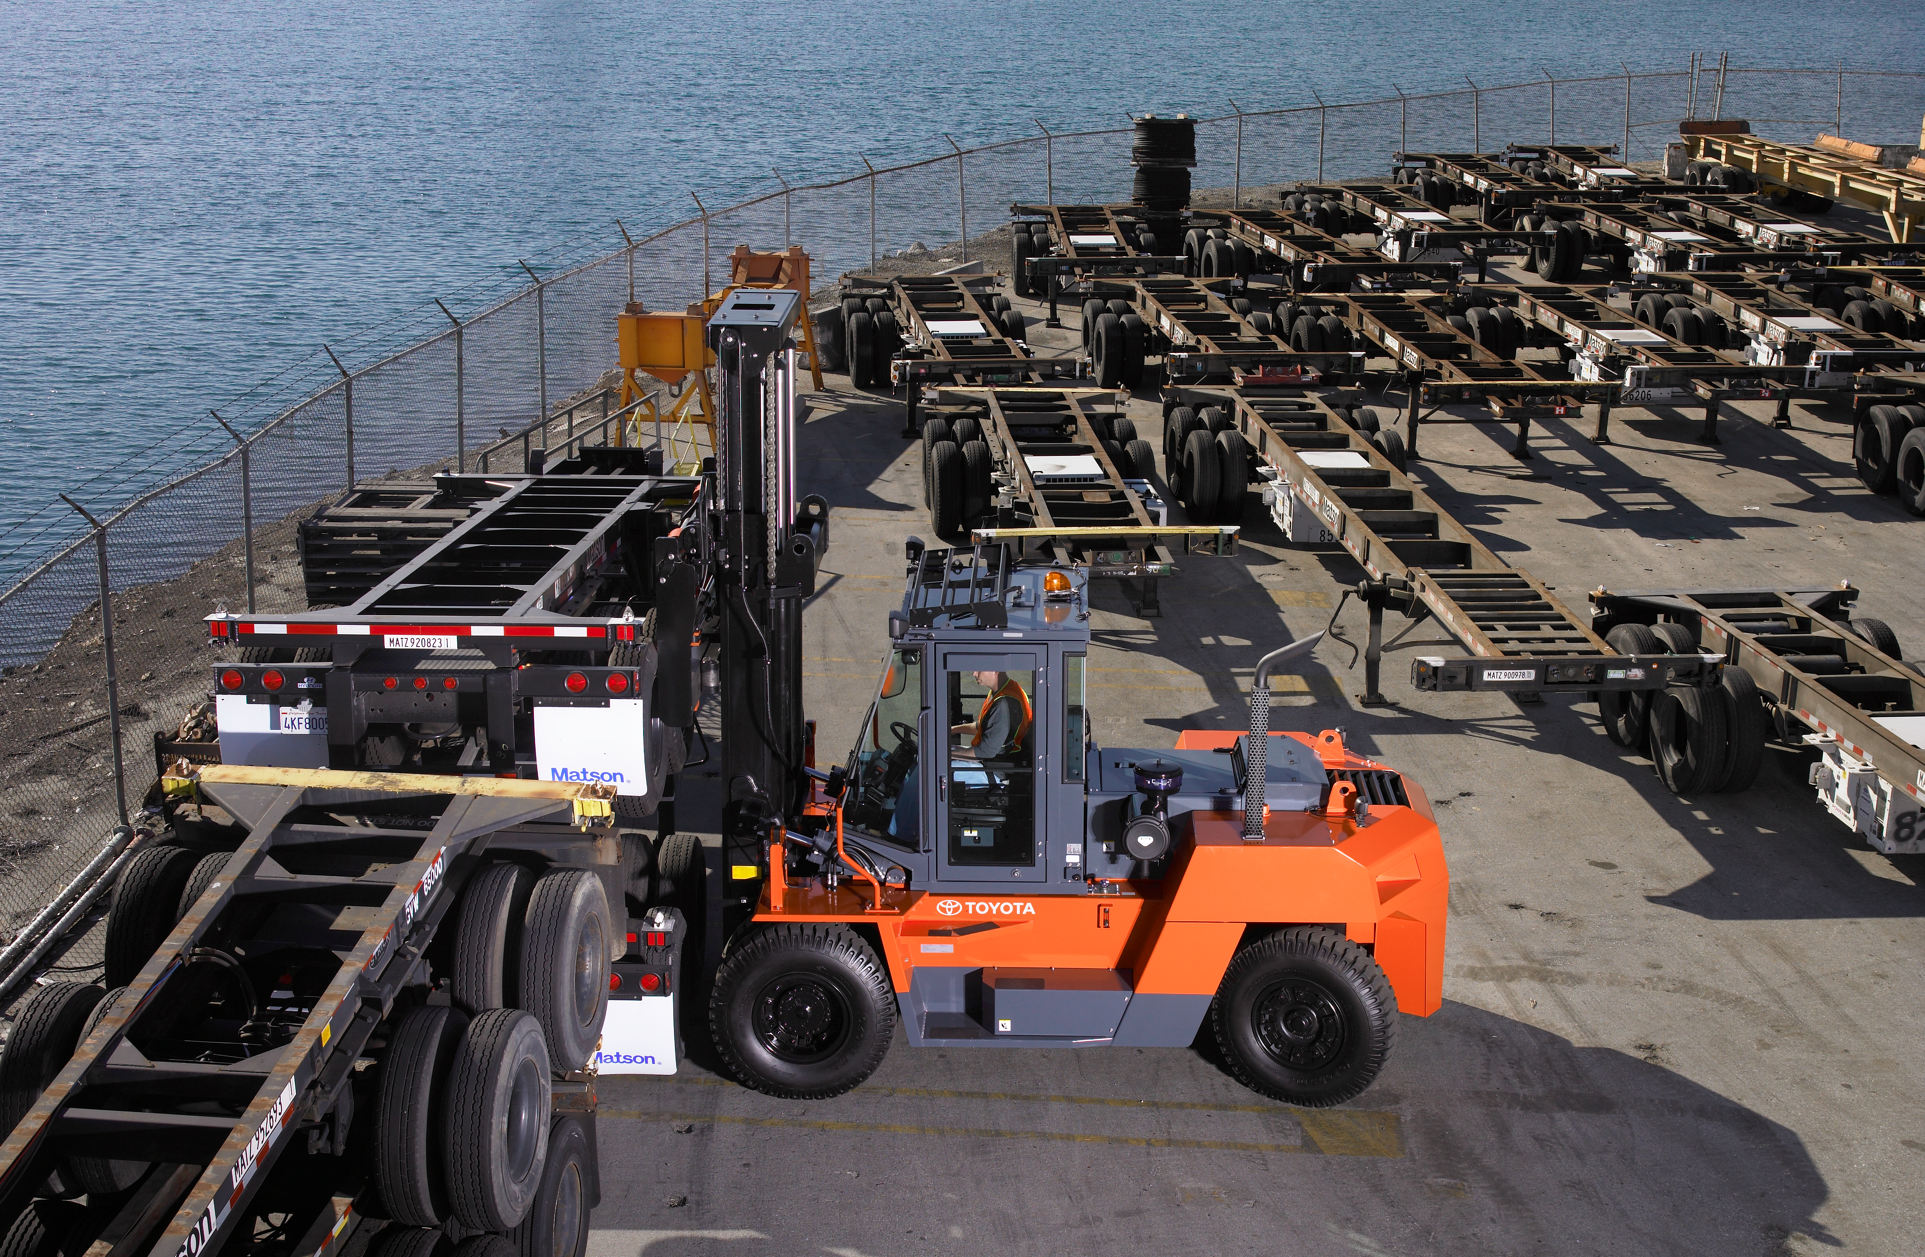 Toyota's High-Capacity IC Pneumatic forklift in action.